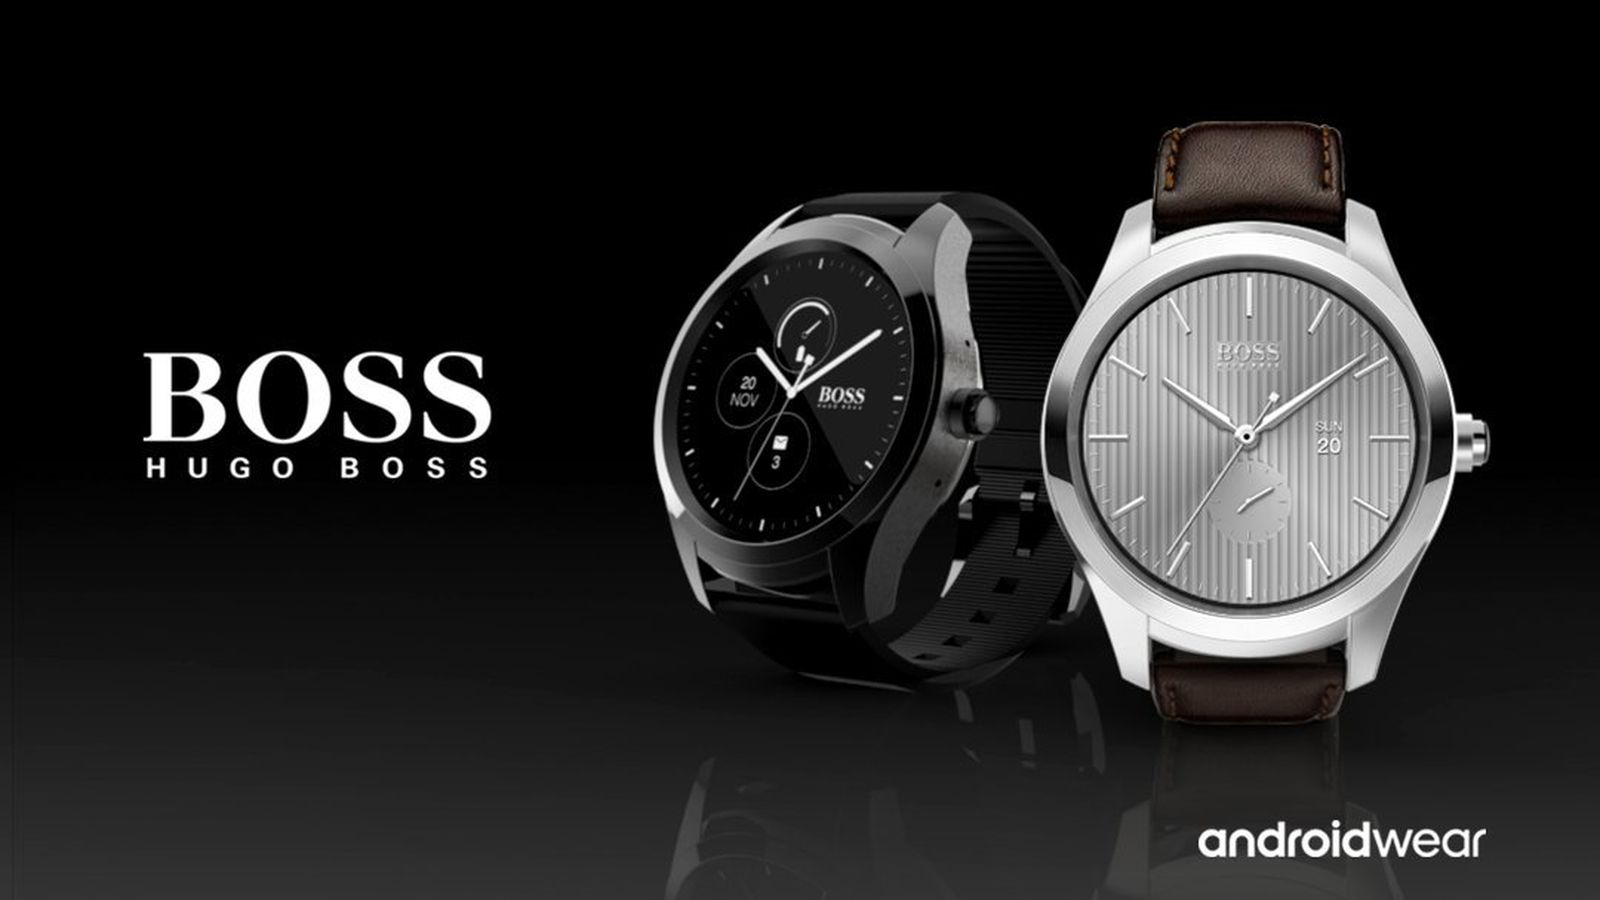 Tommy Hilfiger and Hugo Boss are the latest fashion brands to announce Android Wear watches